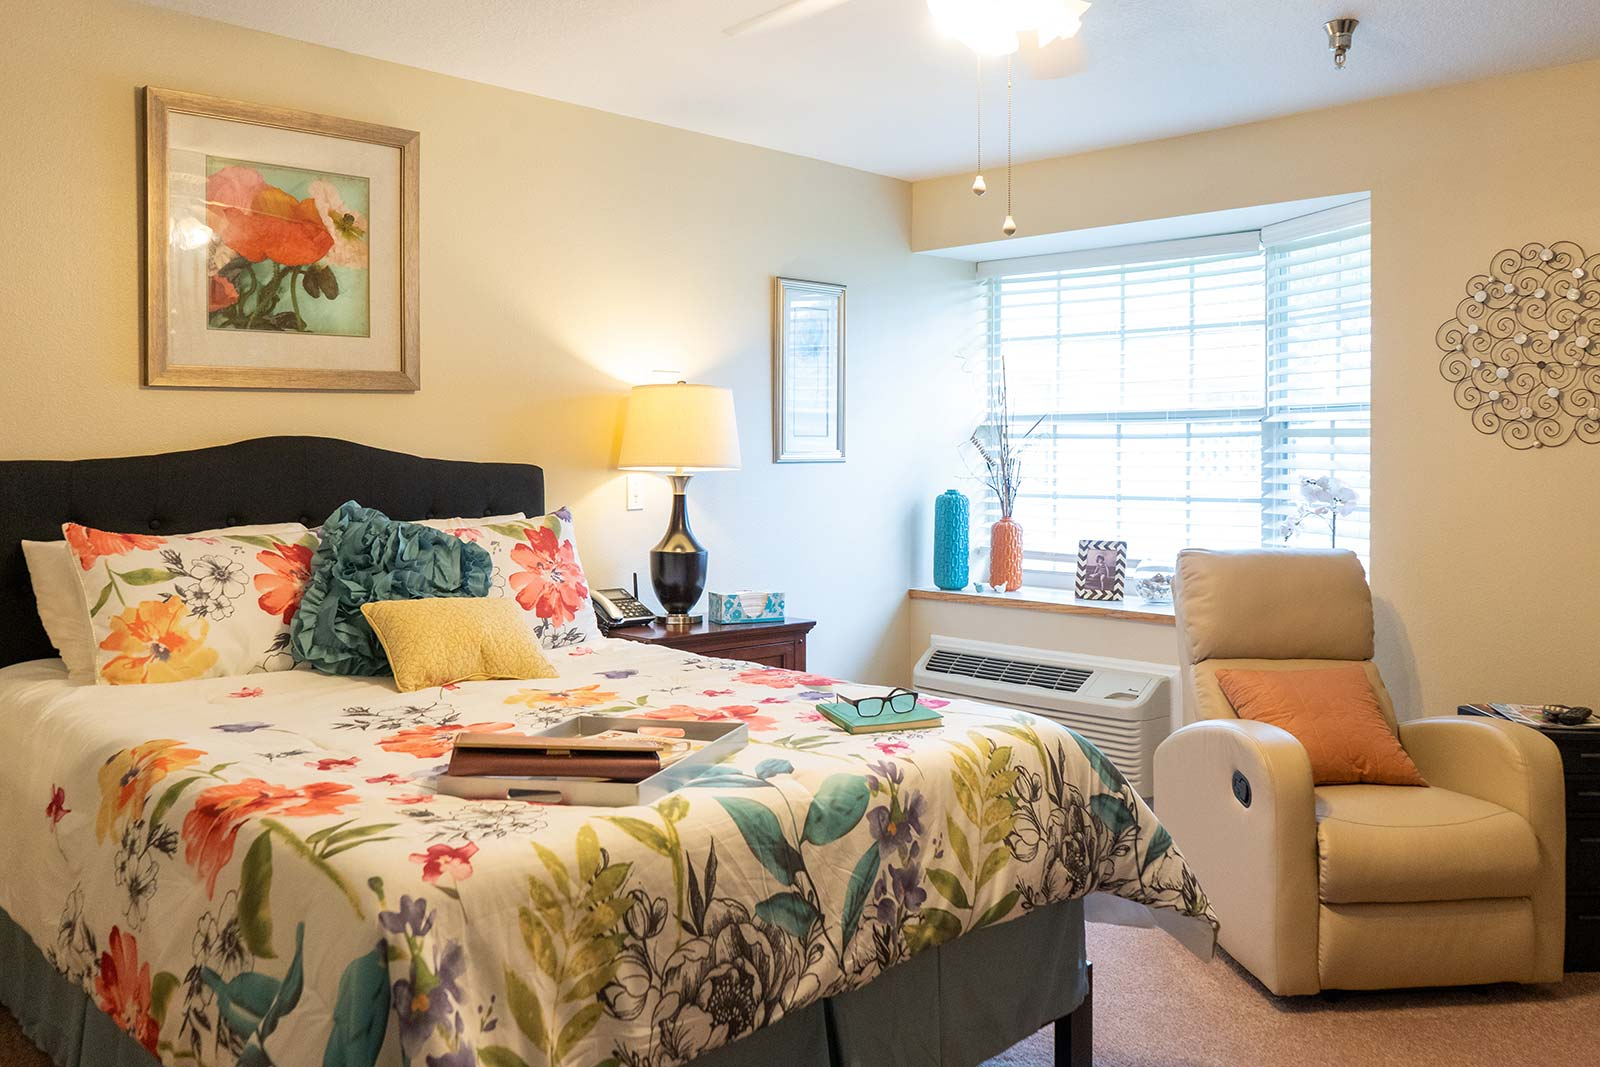 Model apartment bedroom at Heron House assisted living and memory care community in Sarasota, FL